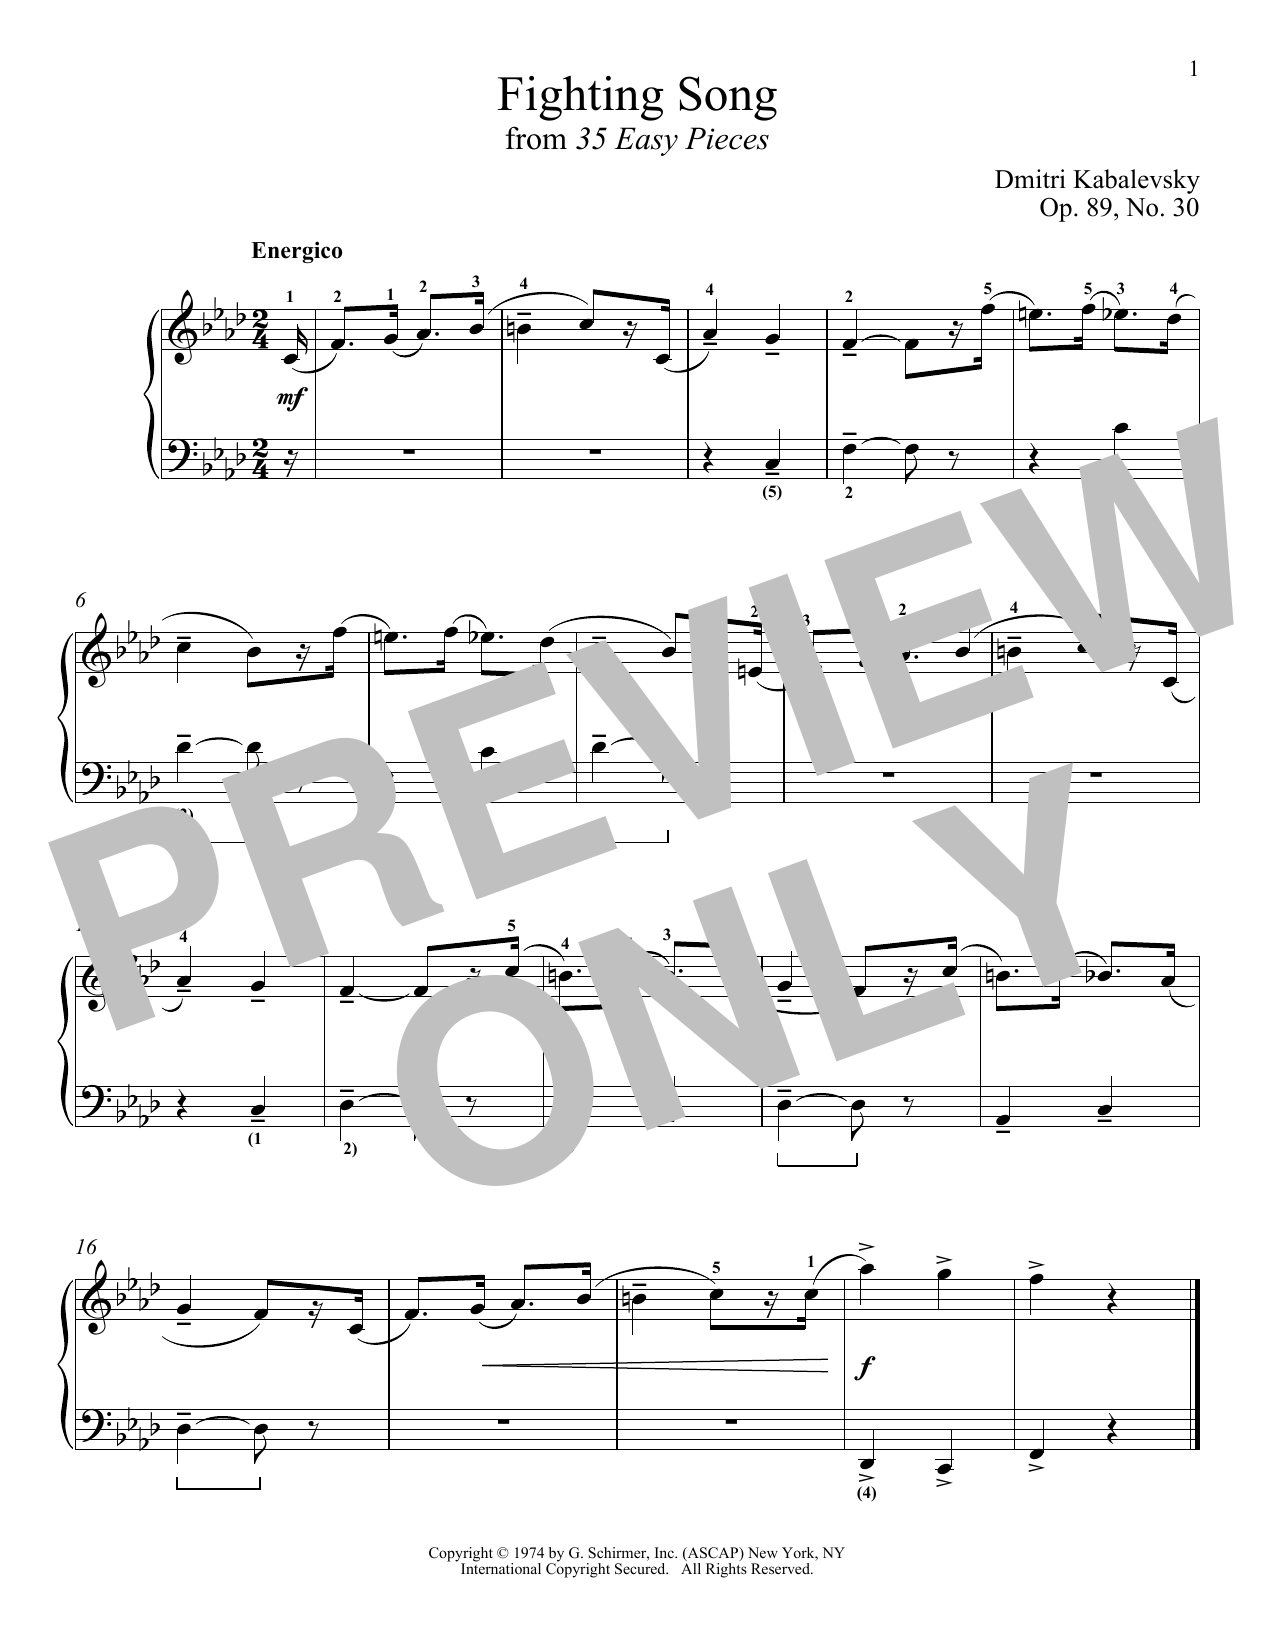 Dmitri Kabalevsky Fighting Song, Op. 89, No. 30 sheet music notes and chords